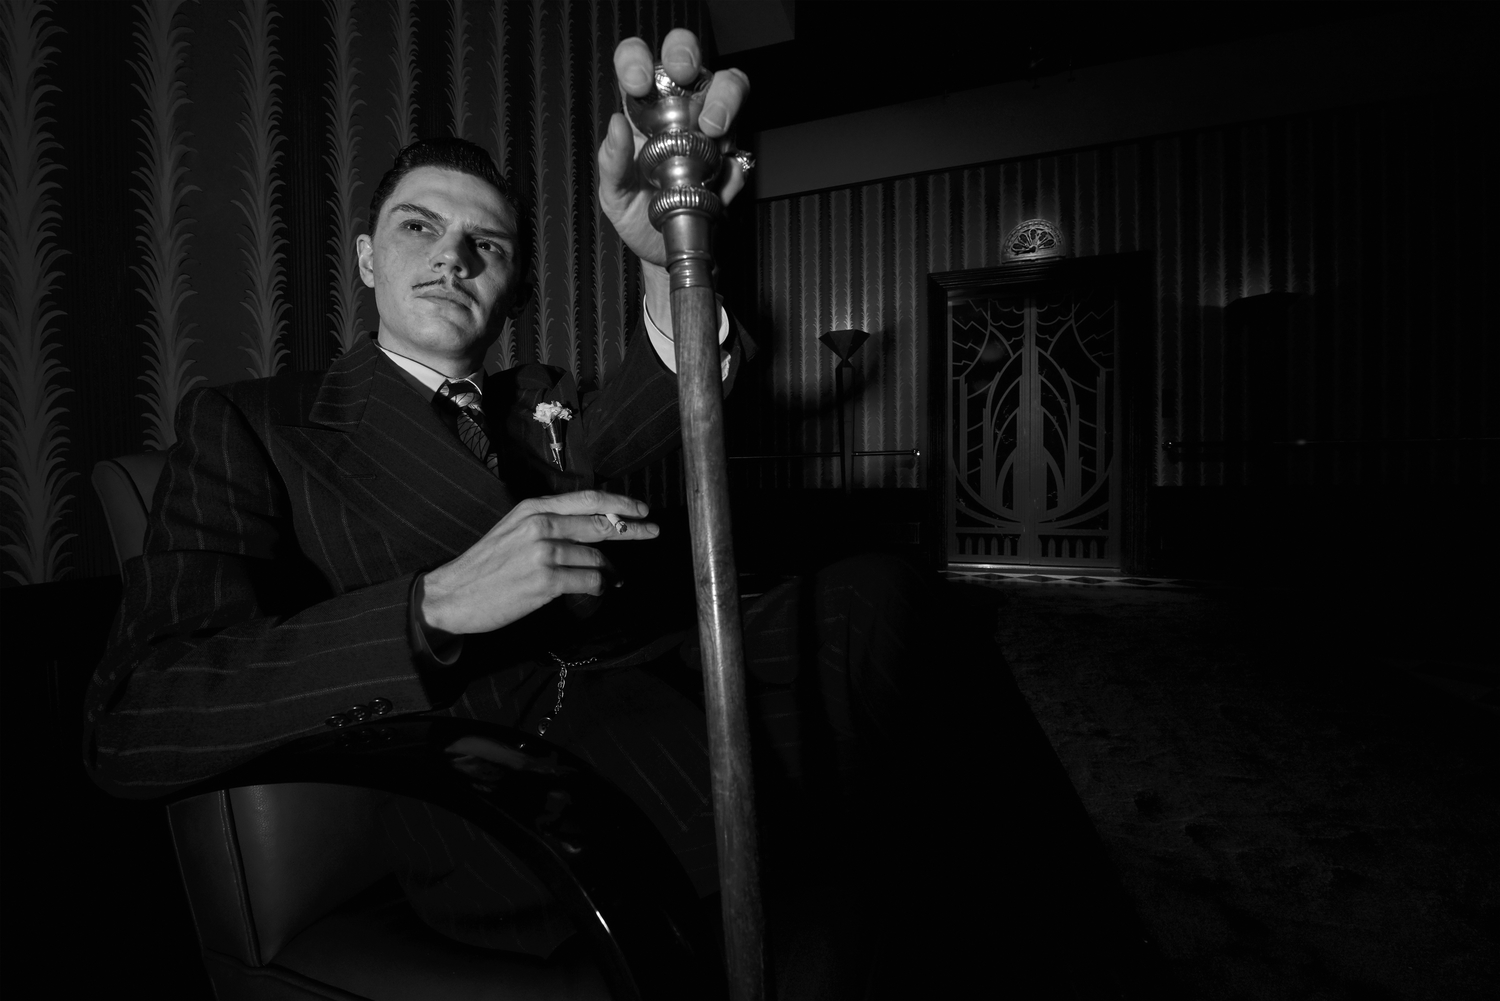 AMERICAN HORROR STORY: HOTEL -- Pictured: Evan Peters as Mr.March. CR: Frank Ockenfels/FX